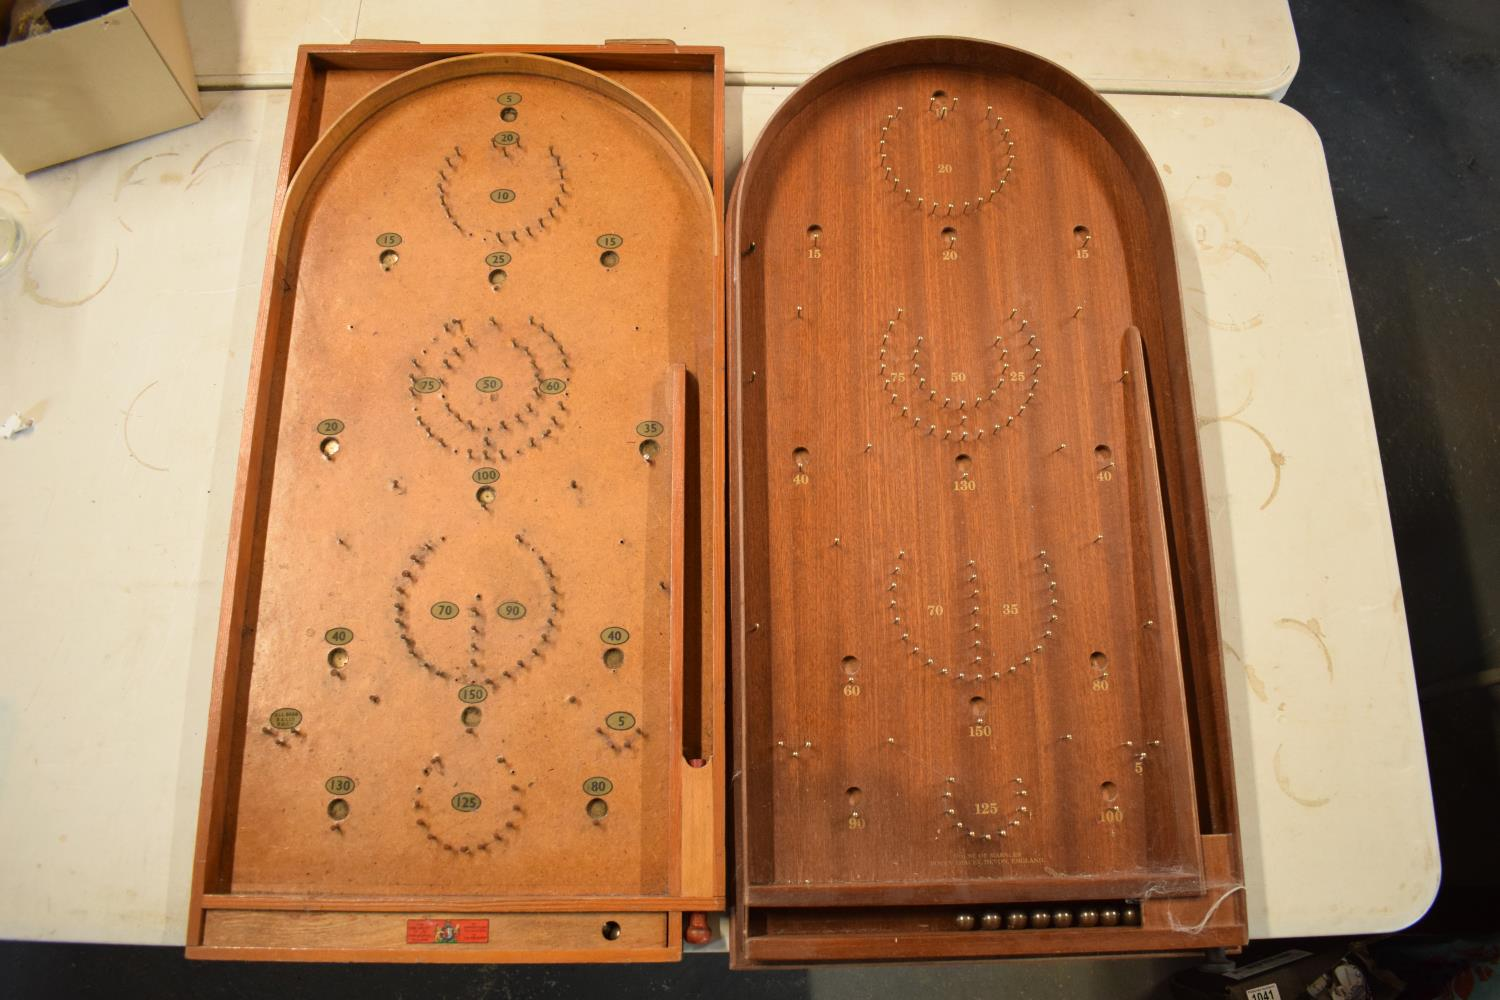 A pair of 20th century wooden bagatelle games complete with associated balls. One is made by Chad